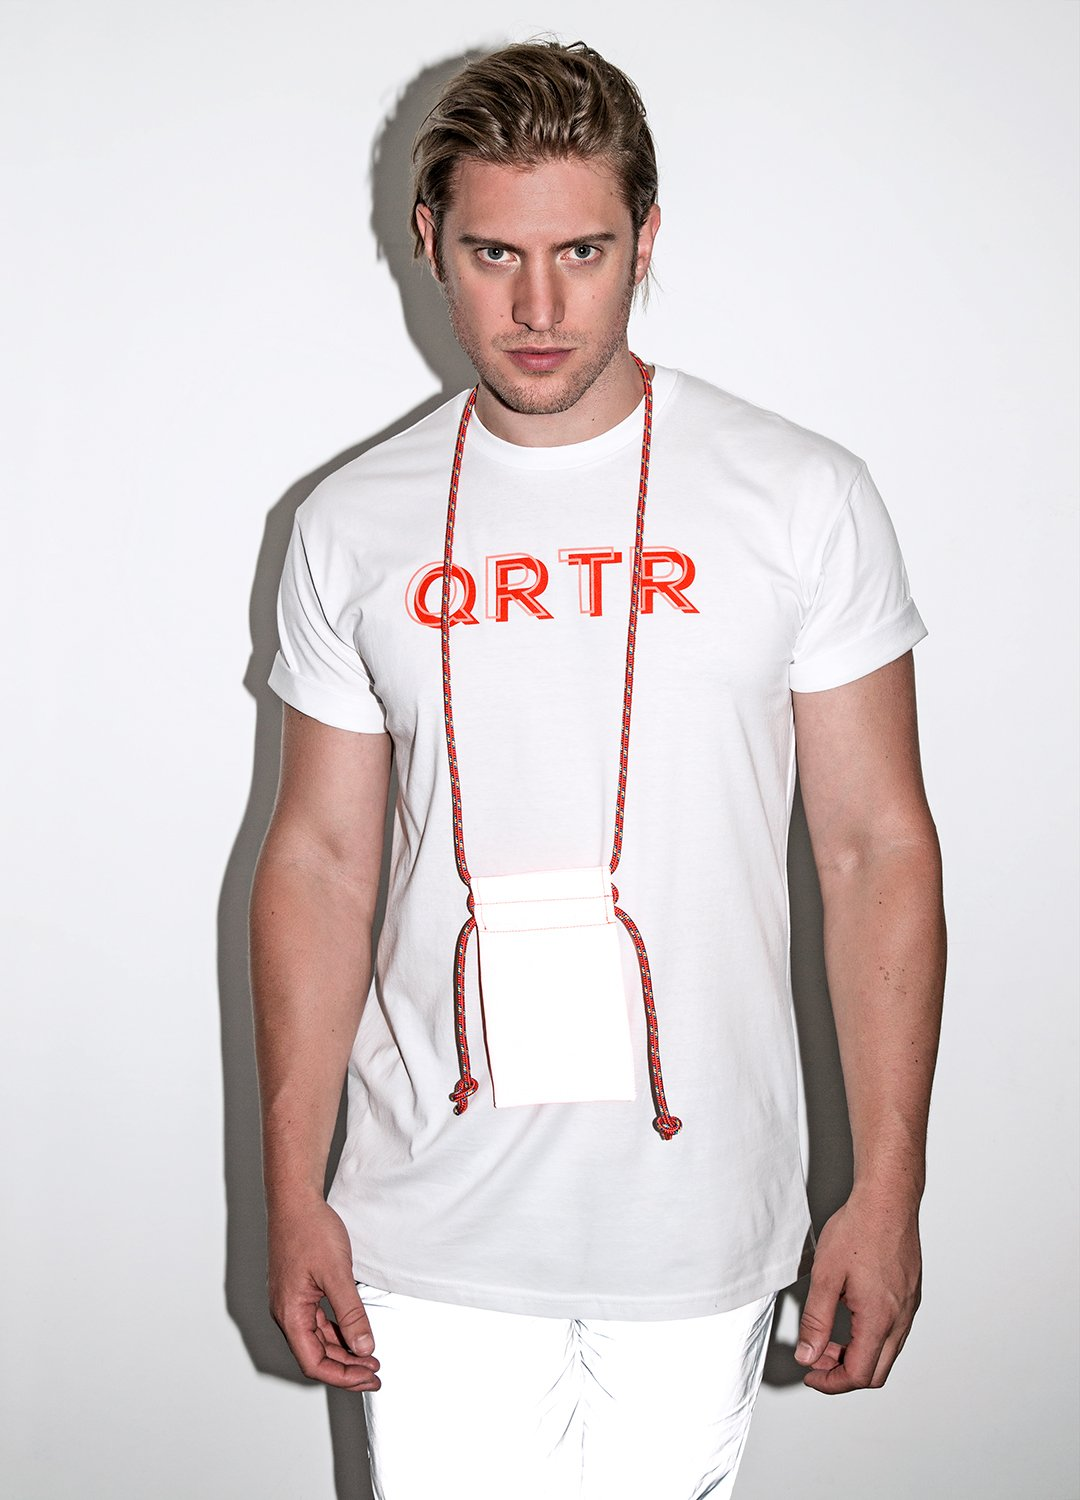 QRTR Edition Drop Logo T-Shirt - QRTR